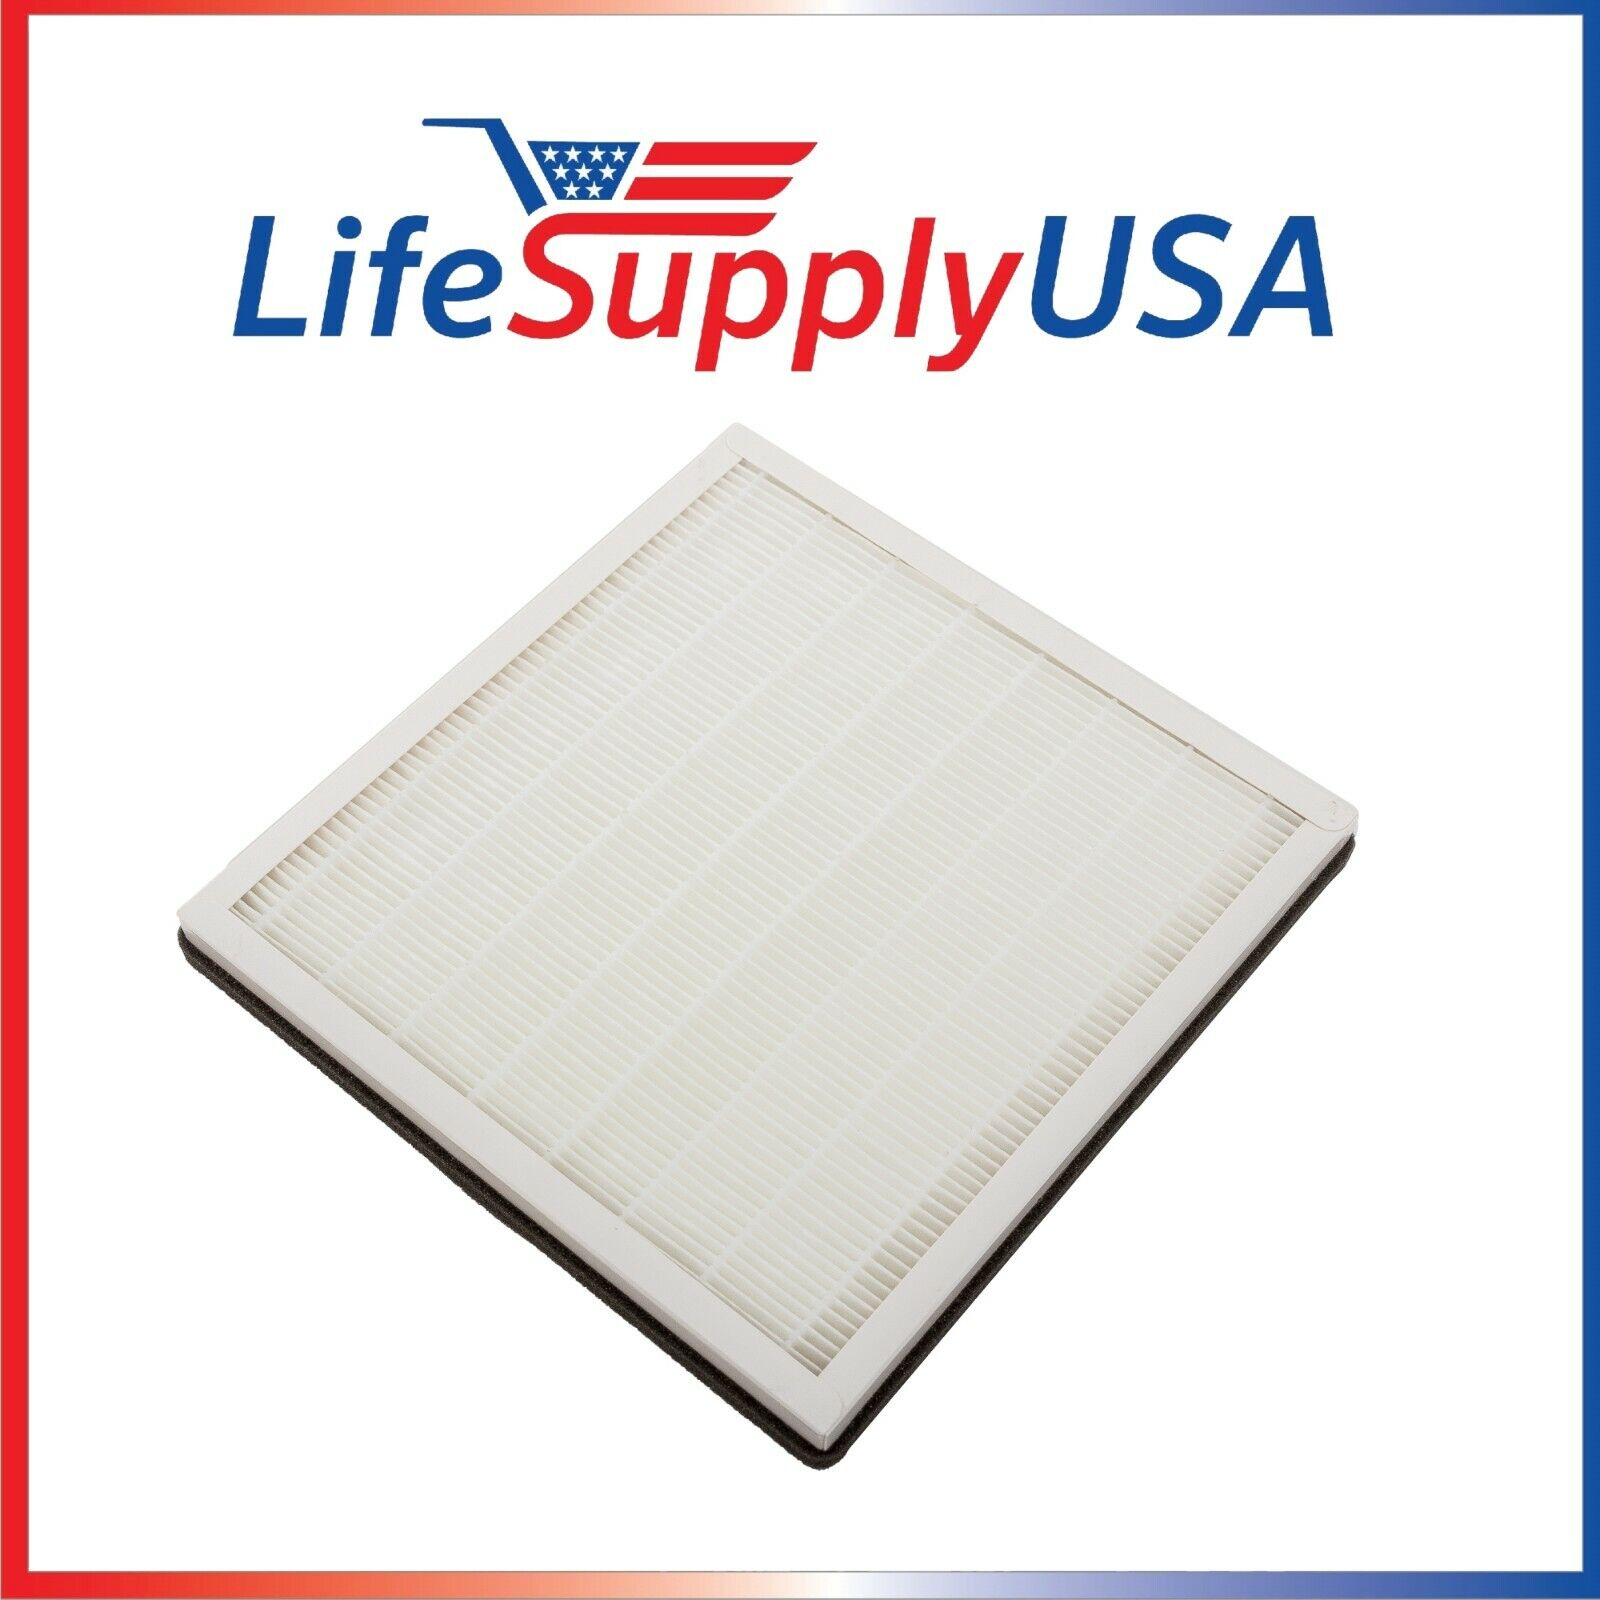 True HEPA Filter 3-in-1 fits Pure Enrichment Zone Air Cleane